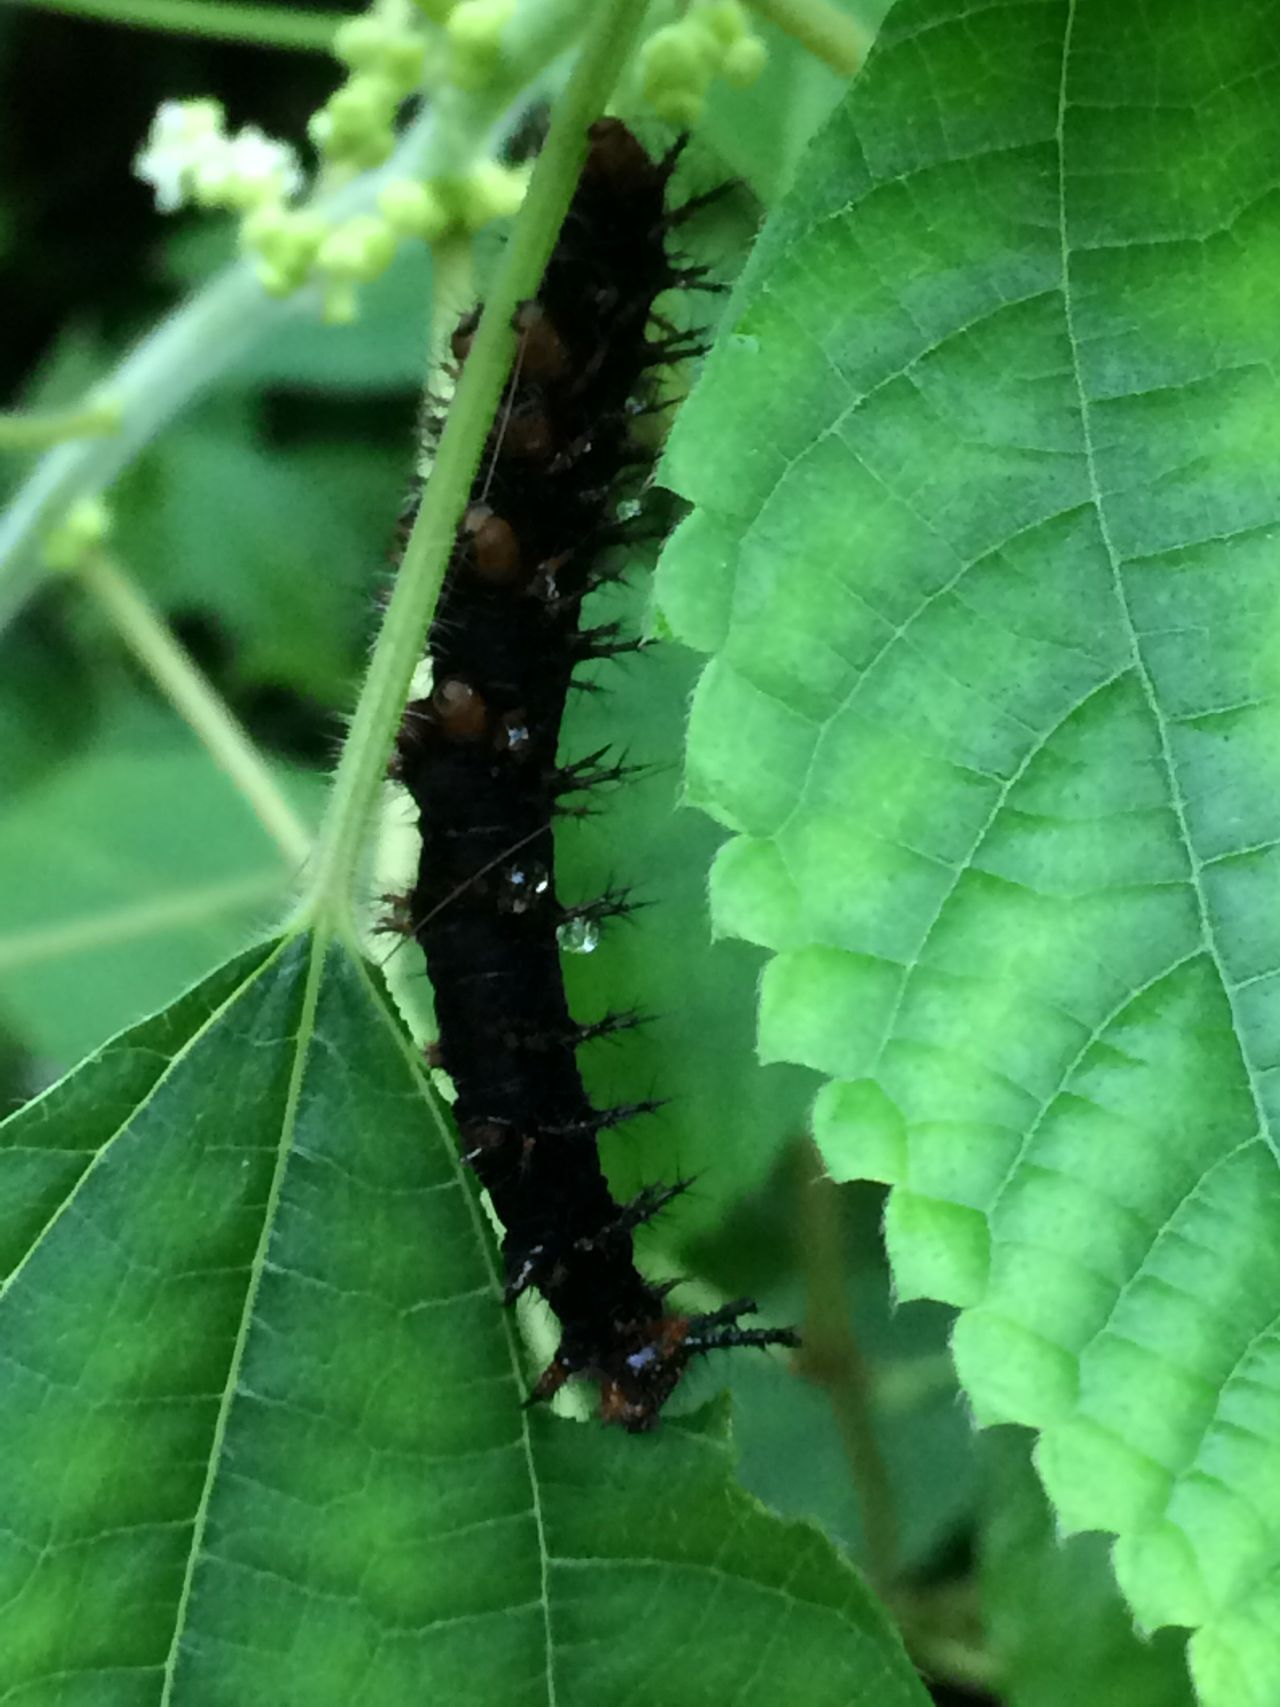 Caterpillar Leaf Insect Animal Themes Green Color Close-up One Animal Growth Plant Leaf Vein Nature Focus On Foreground Beauty In Nature Tranquility Day Outdoors Leaves Freshness Full Frame Green